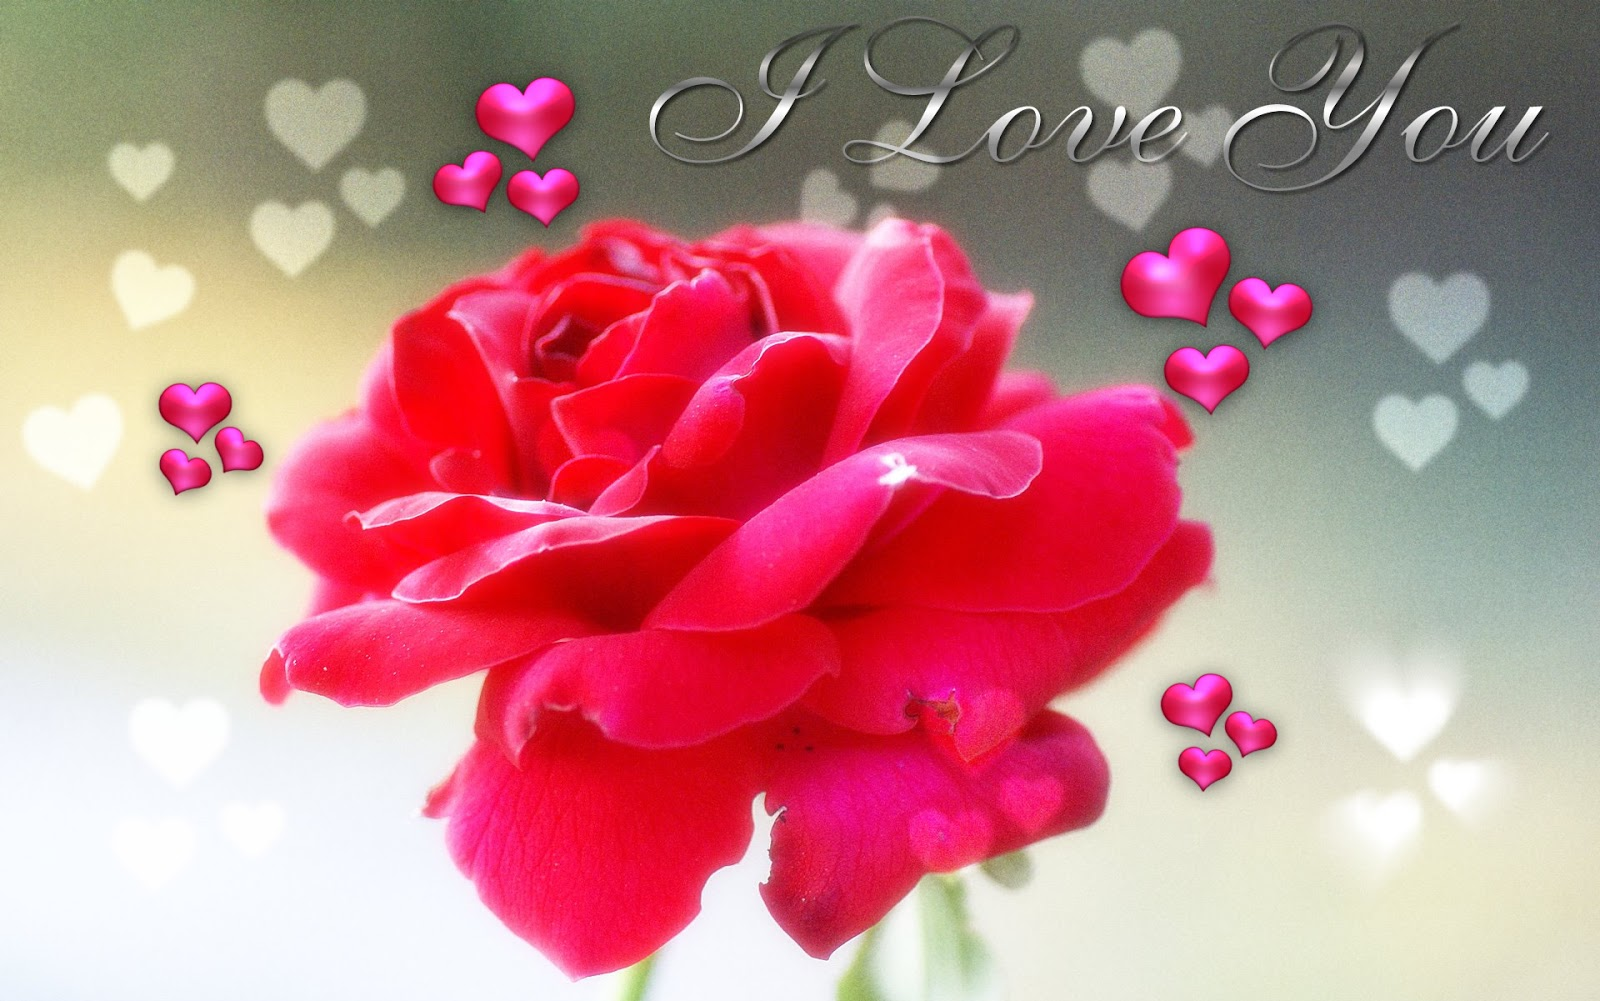 Beautiful Rose for I Love You Wallpaper